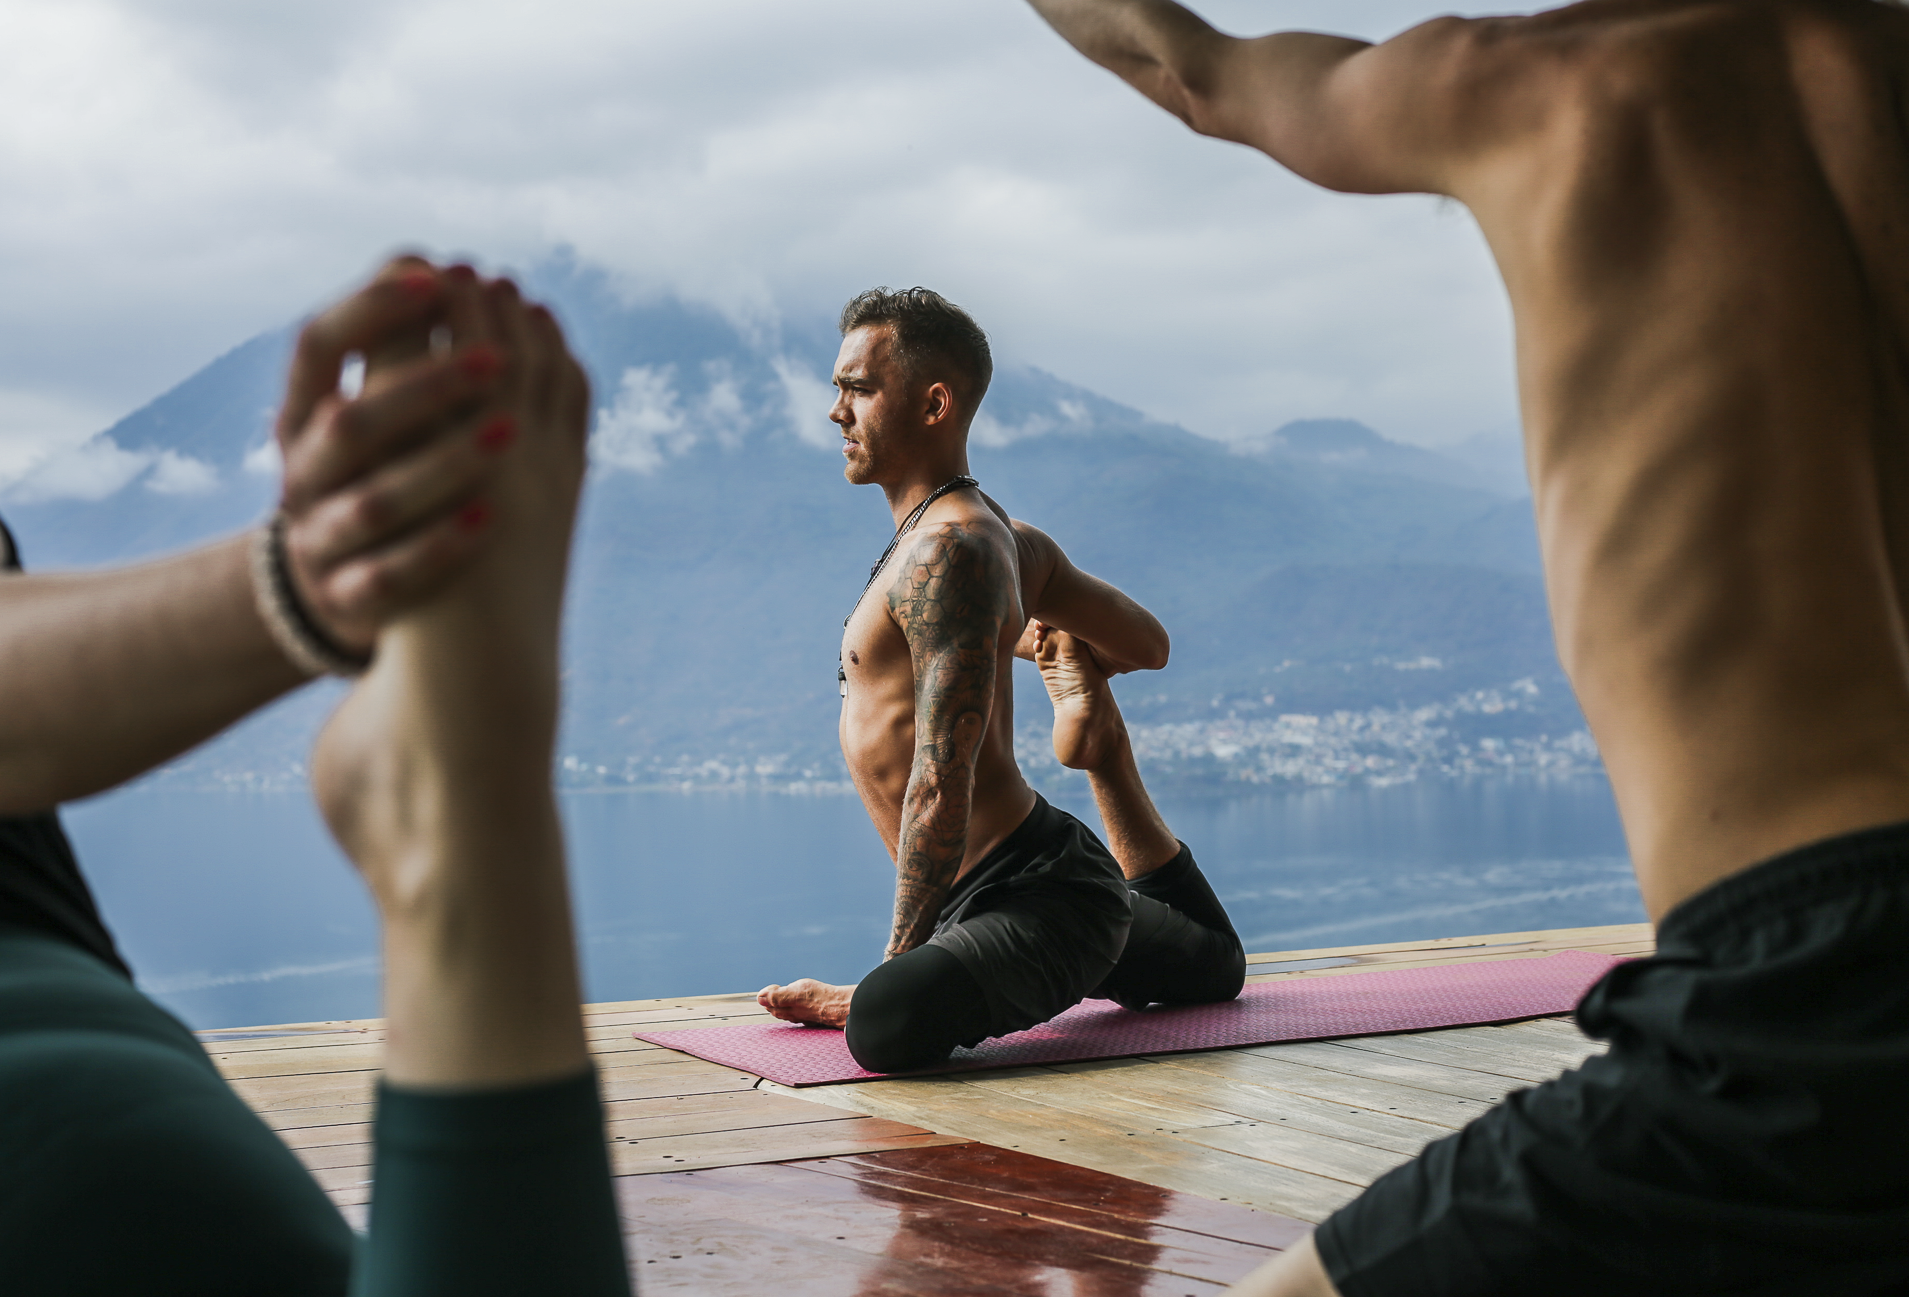 Perry Finley teaches a yoga class at Eagle's Nest in San Marcos La Laguna, Guatemala. Finley is not only a yoga instructor but also a DJ, marketer for festivals and full-time digital nomad.